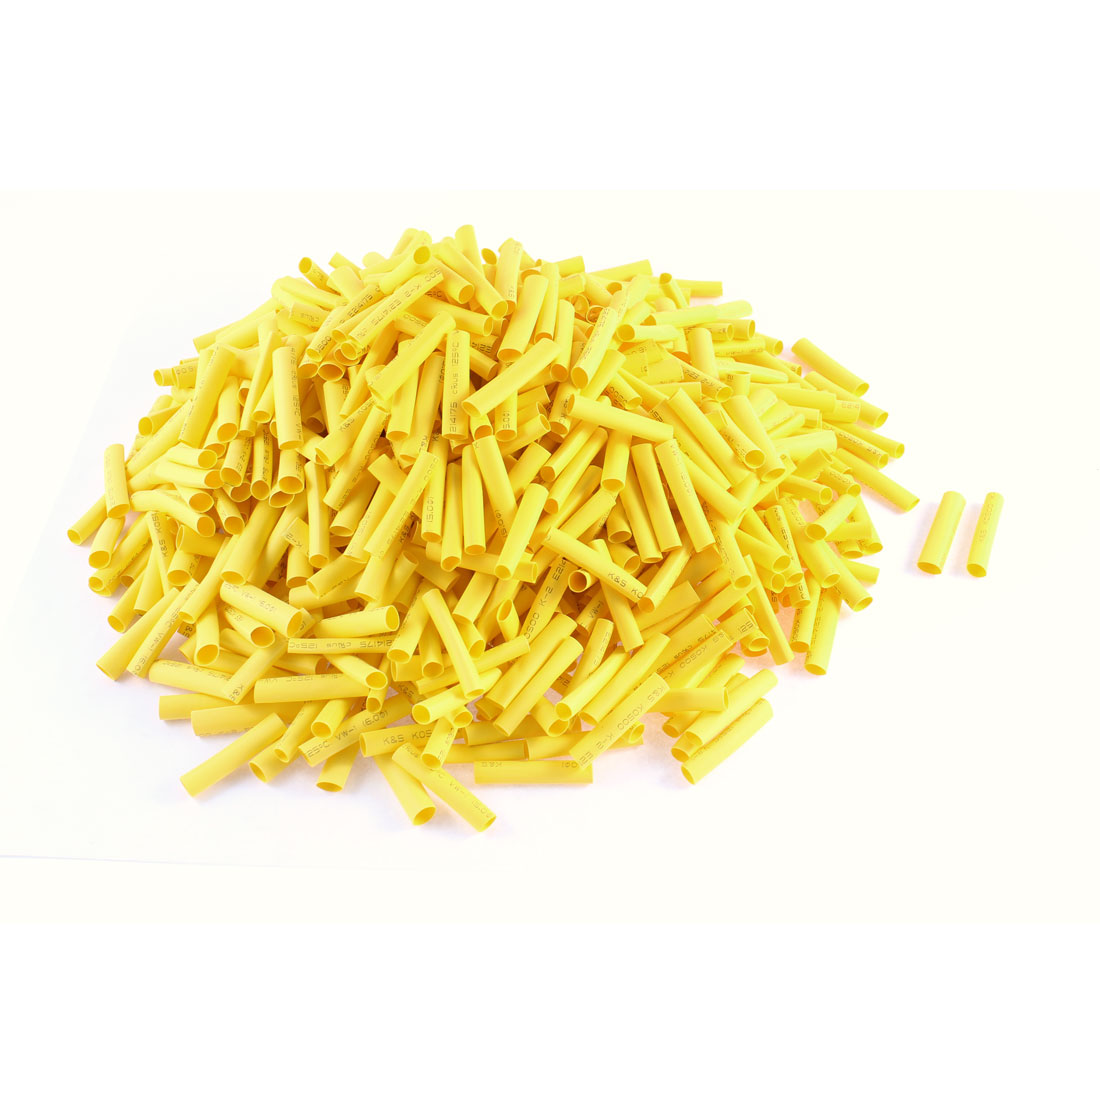 800 Pcs Heat Shrinkable Flexible Polyolefin Yellow Tube 35mm Long